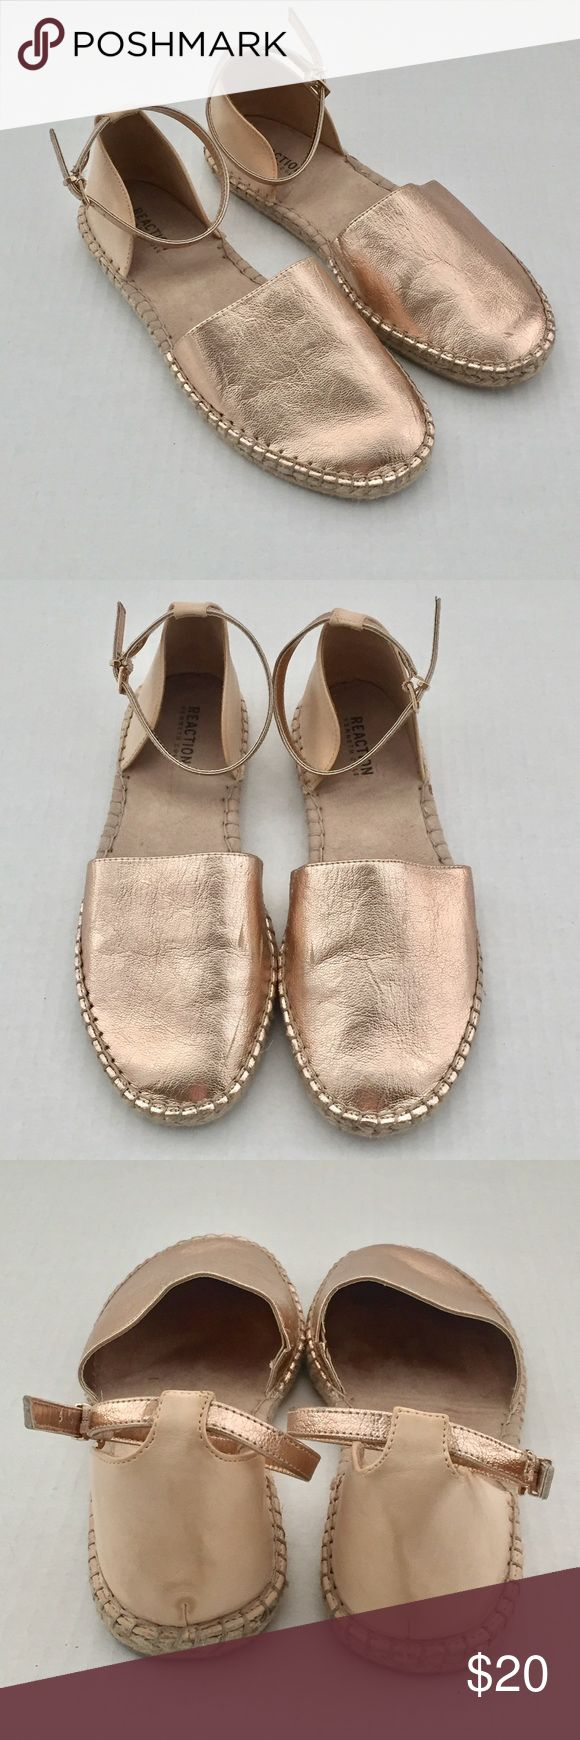 Kenneth Cole Reaction Rose Gold Espadrilles Rose gold espadrilles with ankle strap. Worn only a few times. Barely visible scratches. Rubber sole in excellent condition. Perfect for spring! Kenneth Cole Reaction Shoes Espadrilles